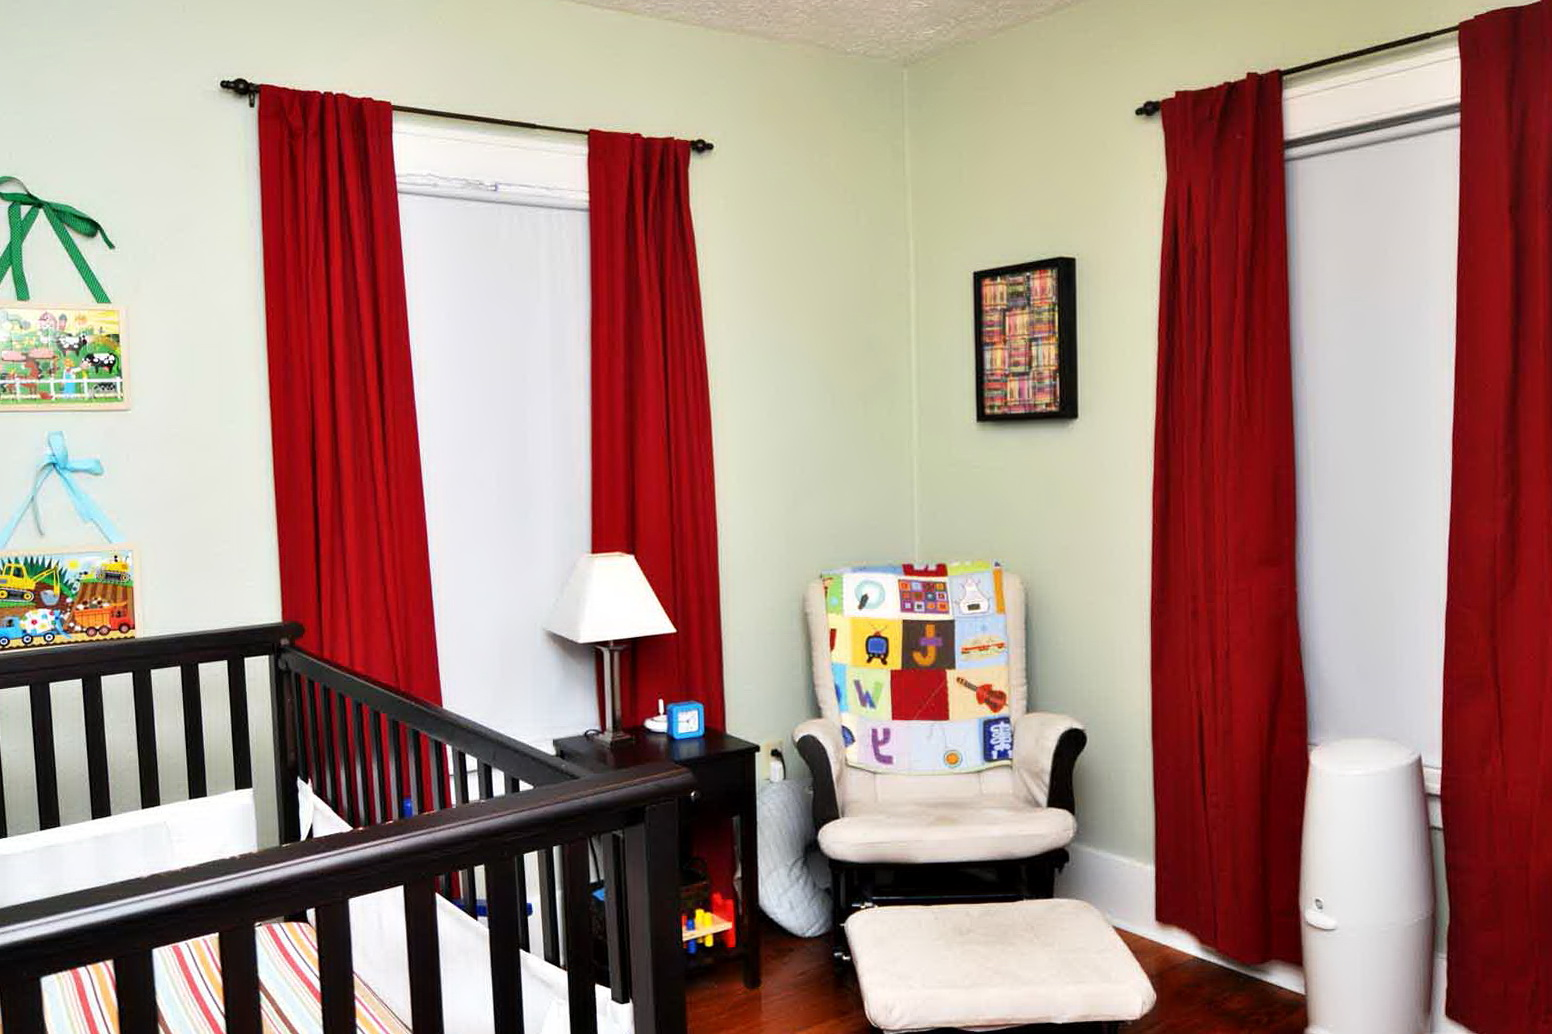 Blackout Shades Baby Room blackout curtains for baby room | home design ideas